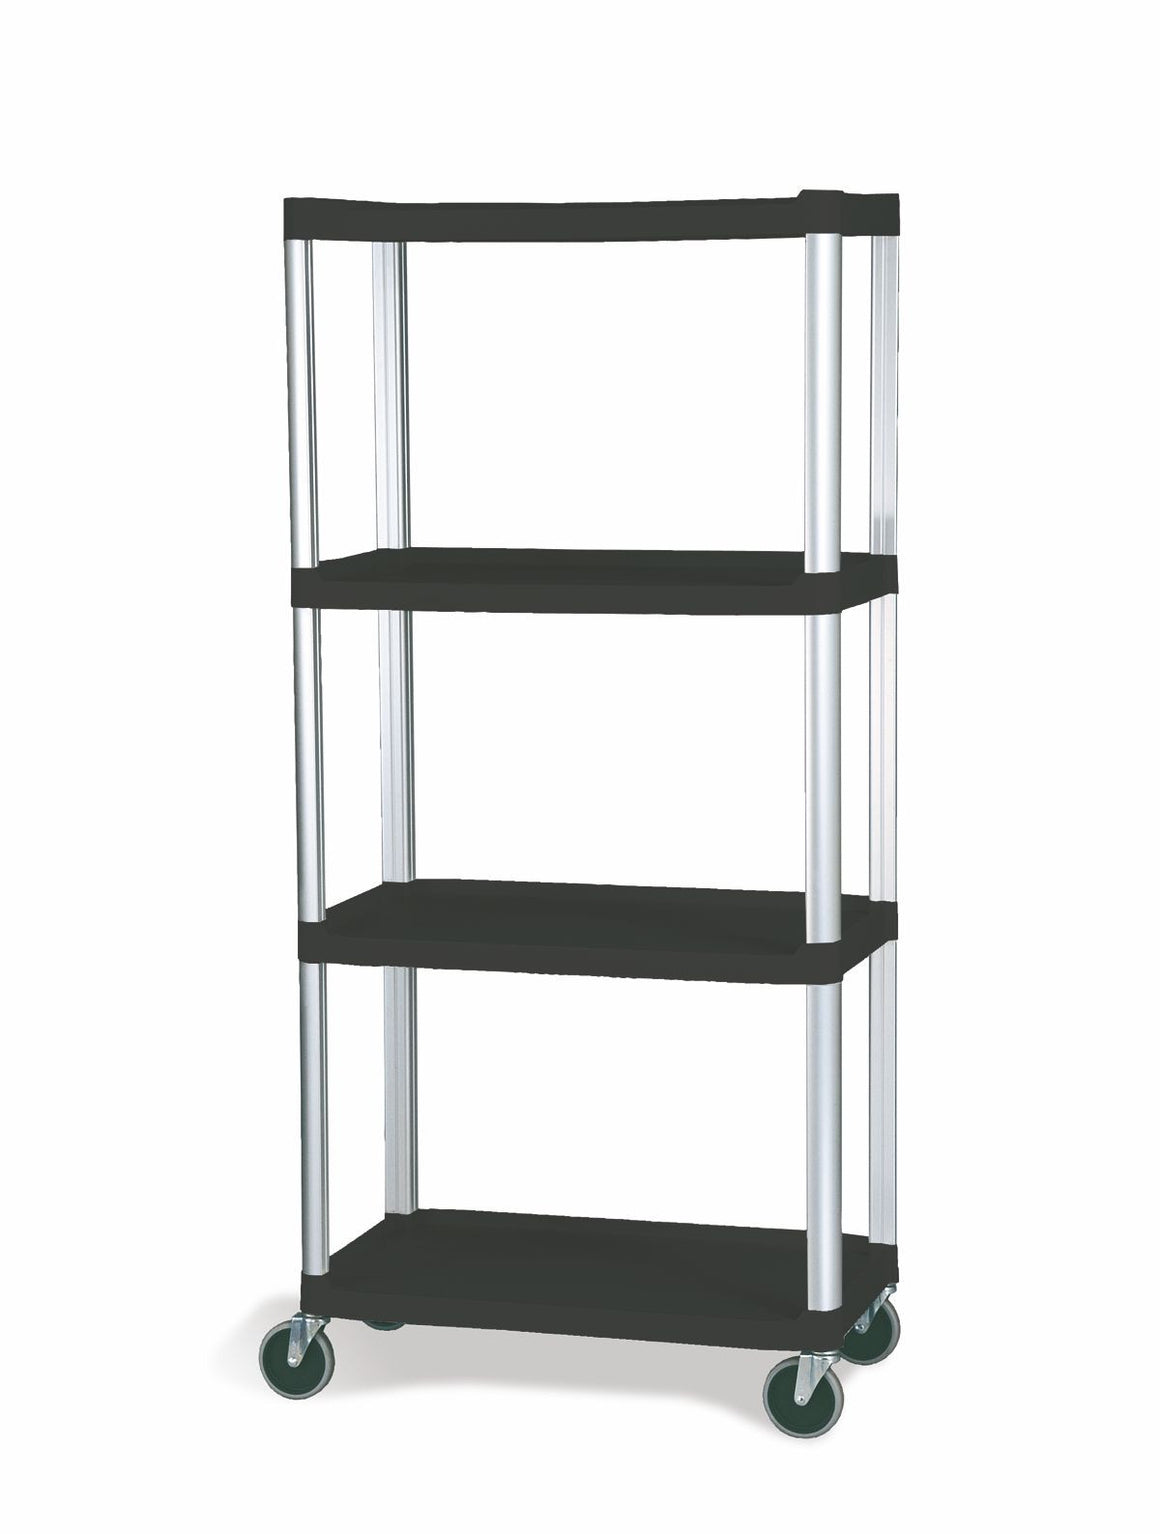 "MOBILE SHELF TRUCK 4-SHELF W/5""CASTER 2W/LOCK"